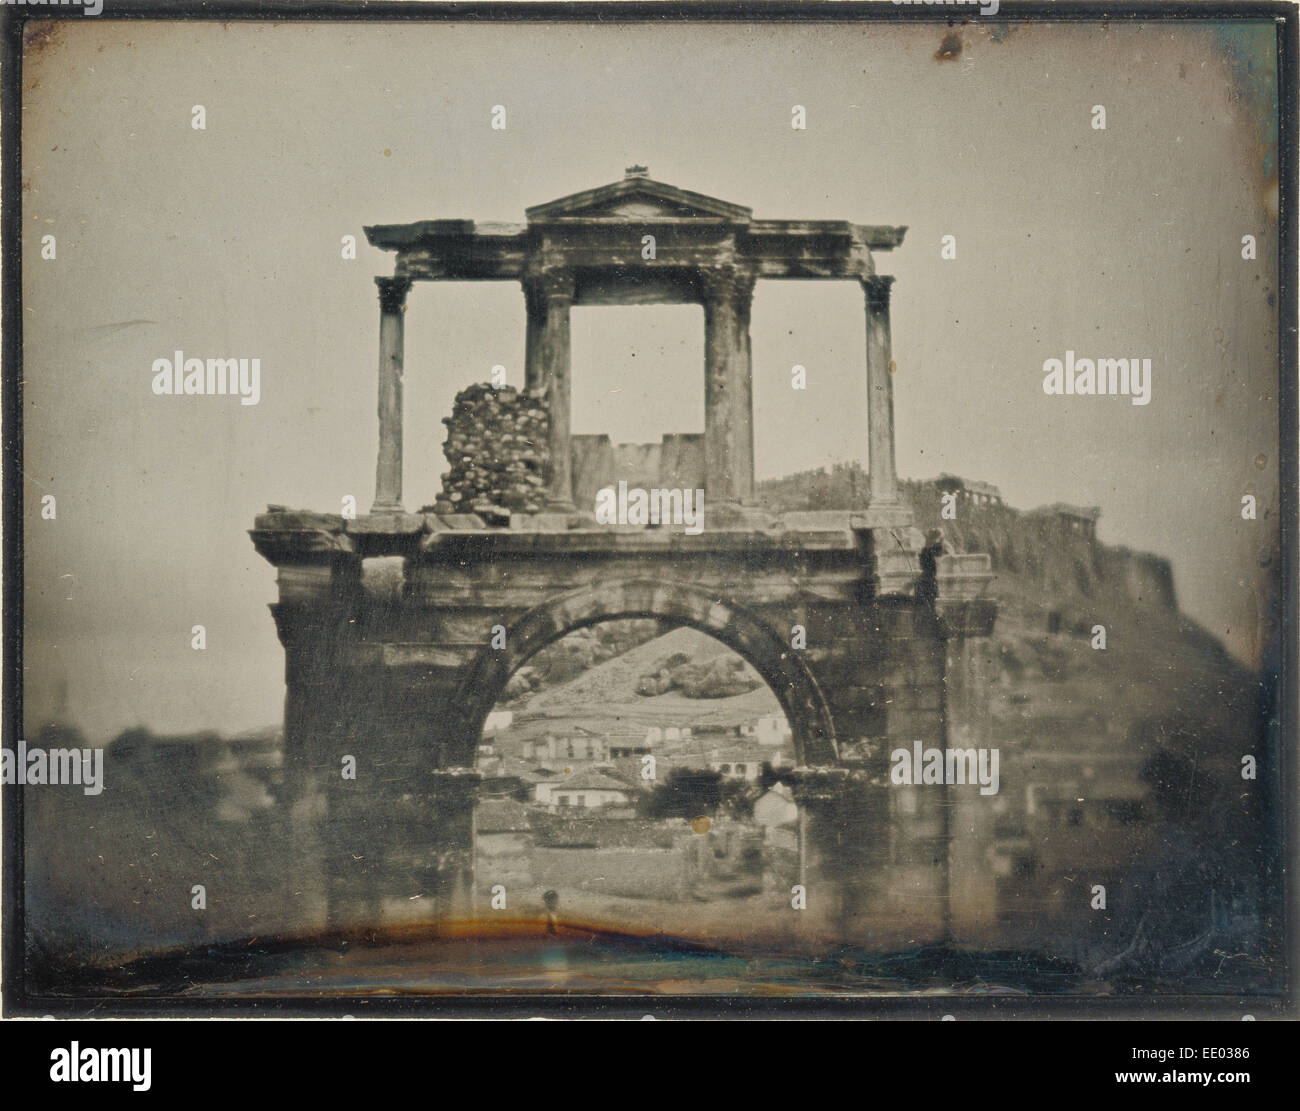 The Arch of Hadrian, Athens; Philippos Margaritis, Greek, 1810 - 1892, and Philibert Perraud, French, born 1815; - Stock Image